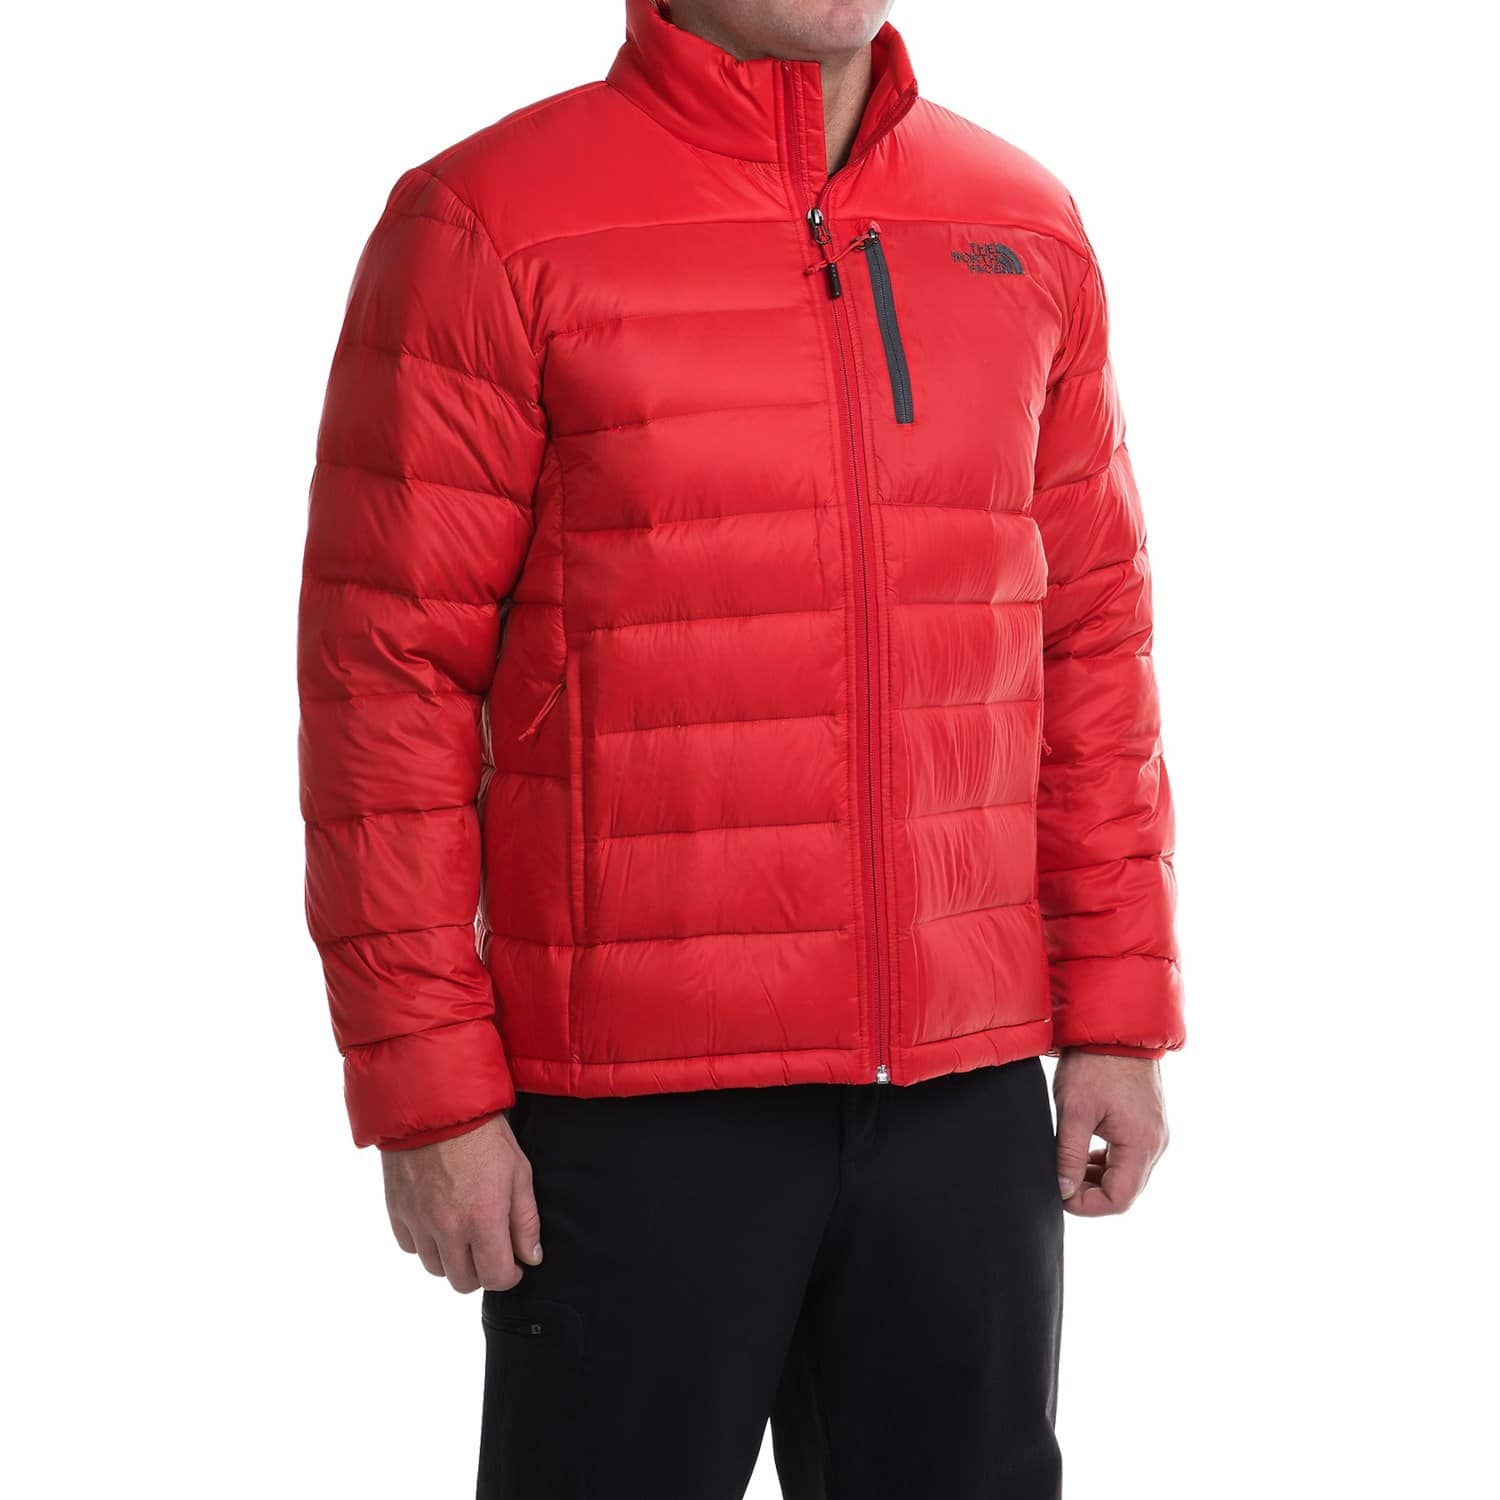 The North Face Aconcagua Down Jacket - 550 Fill Power (For Men) - $79.99 Shipped